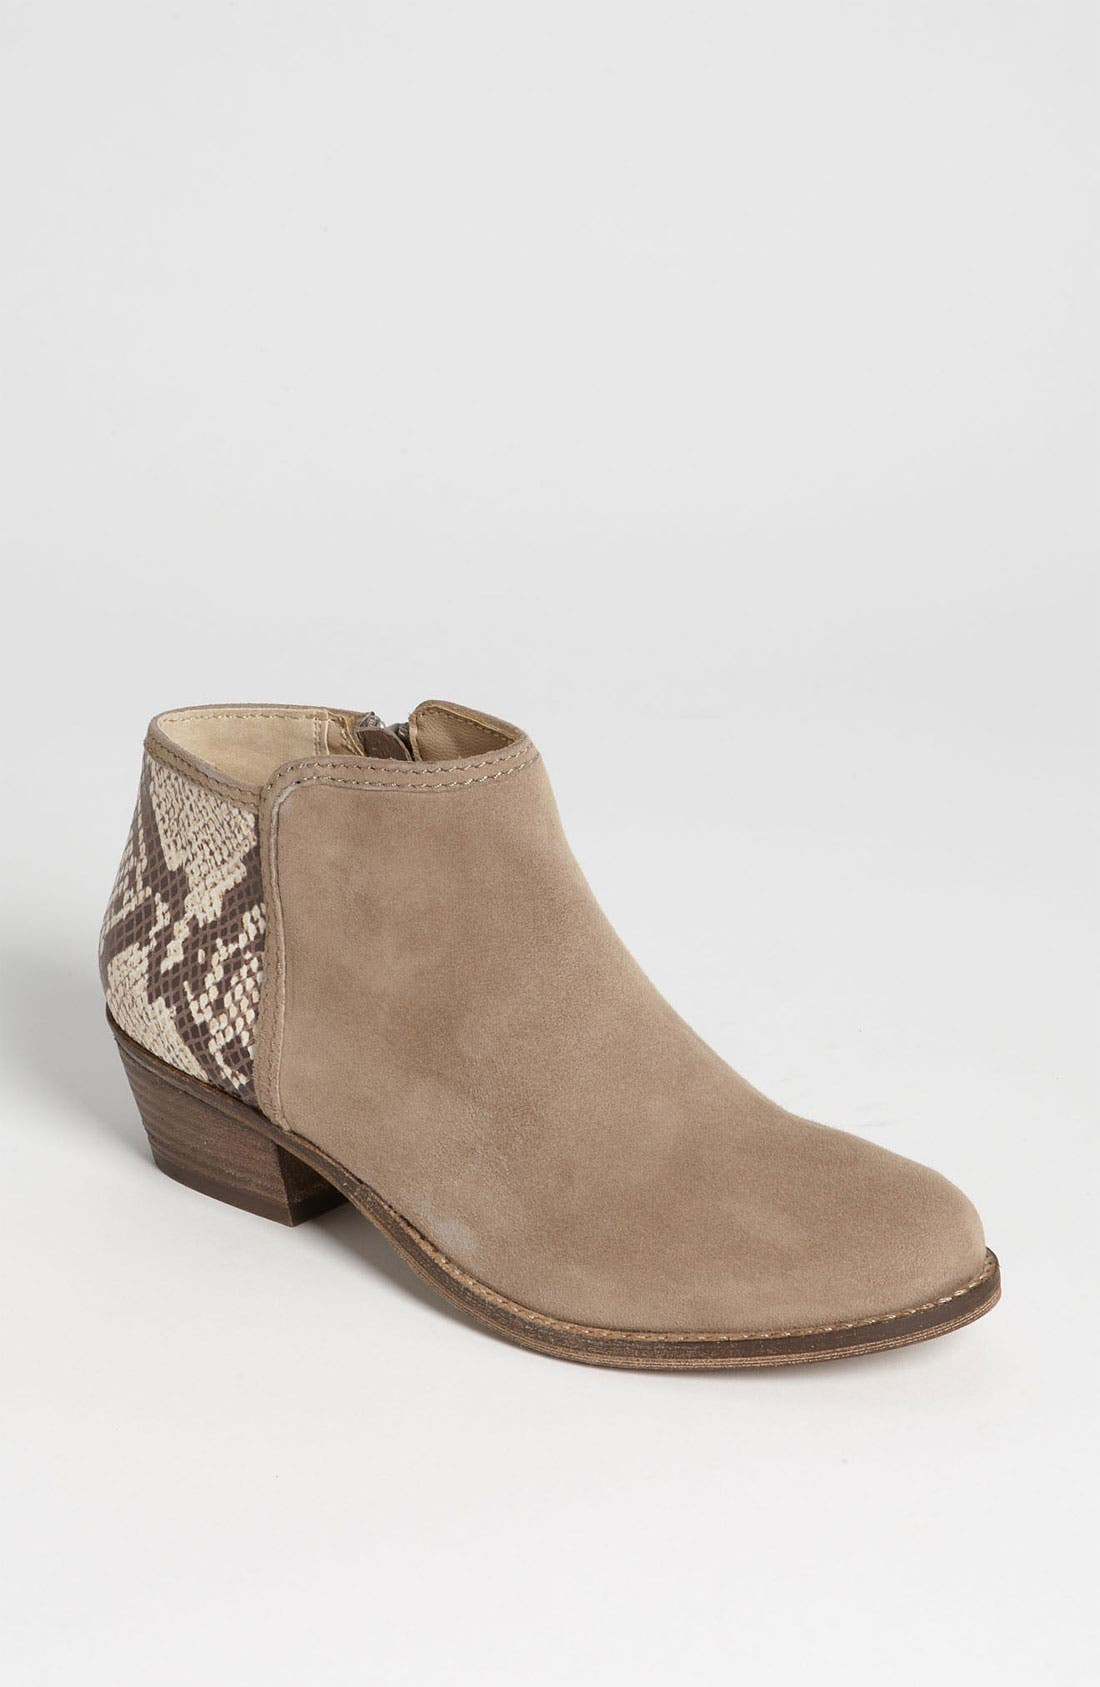 Alternate Image 1 Selected - Steve Madden 'Roterdam' Bootie